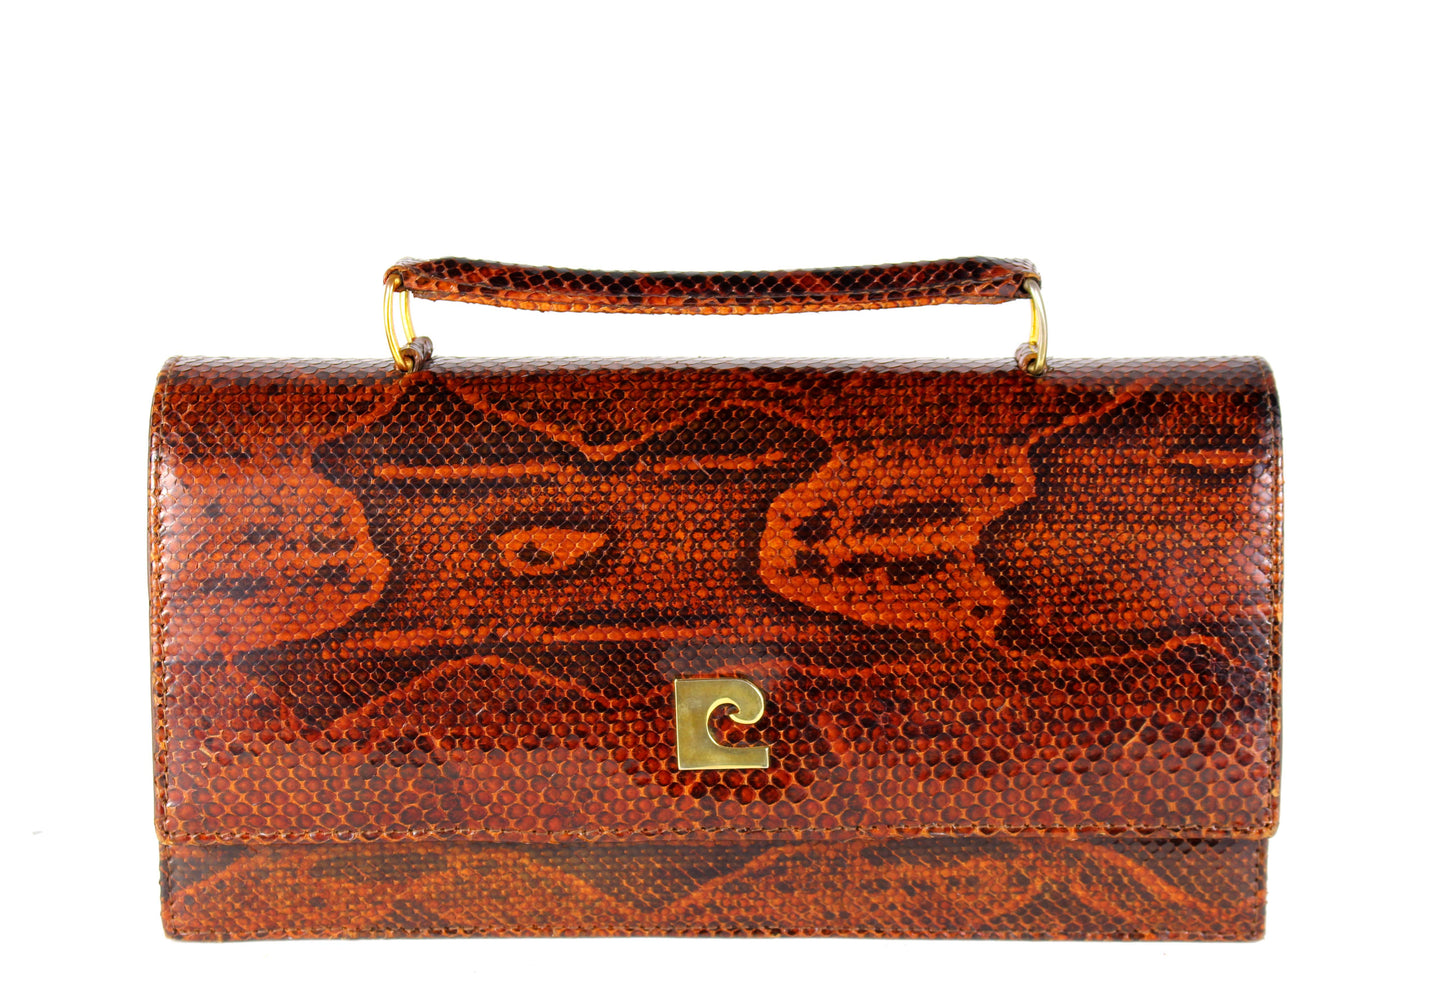 Orange-brown snake skin handbag